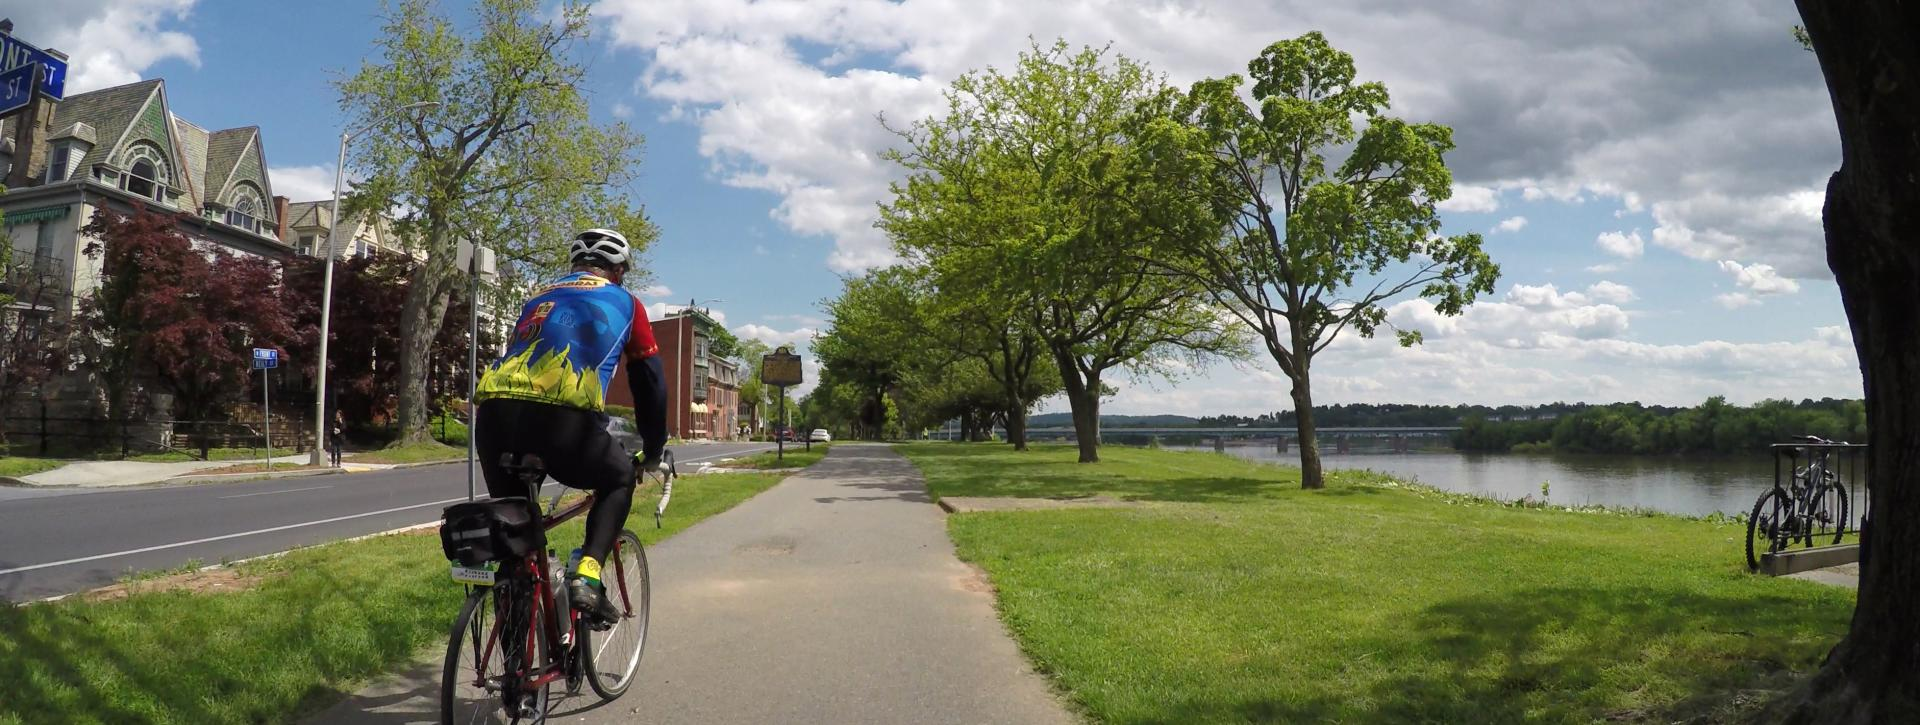 biking-capital-area-greenbelt-riverfront-park-harrisburg